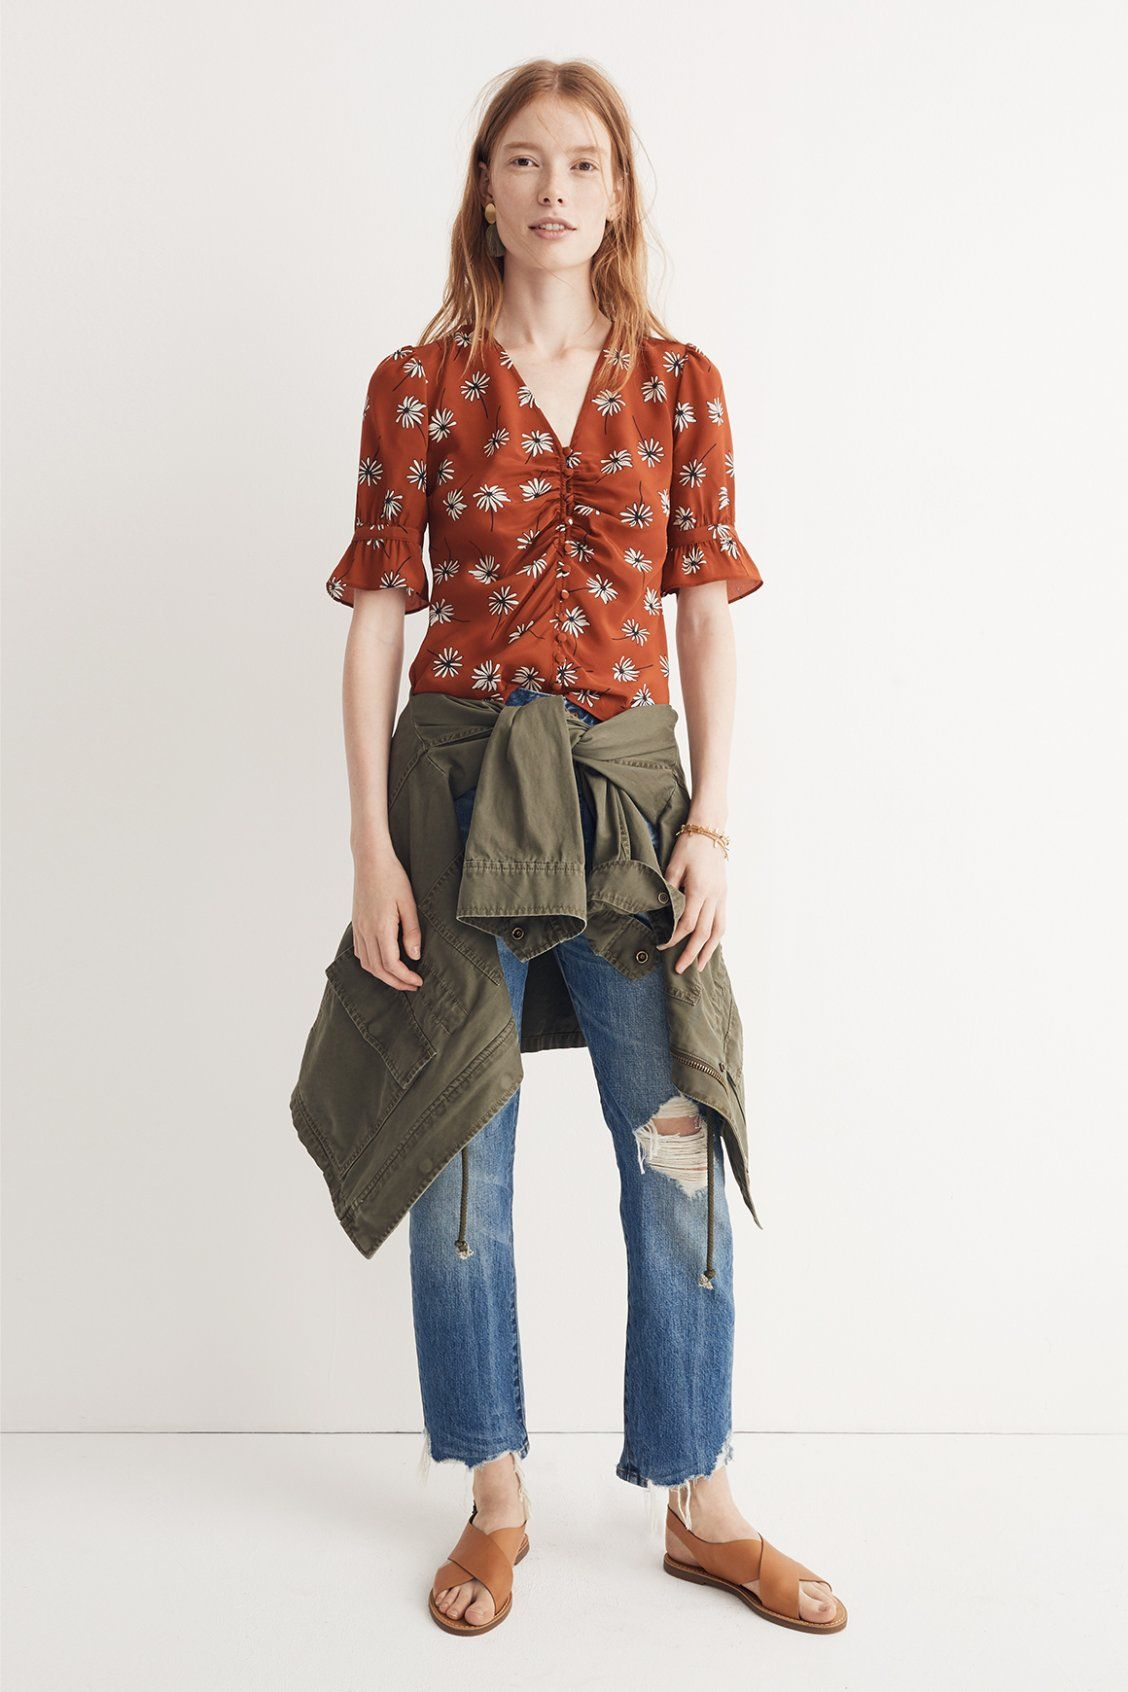 460fd2b5862b madewell daylight top worn with the perfect summer jean  destructed ...